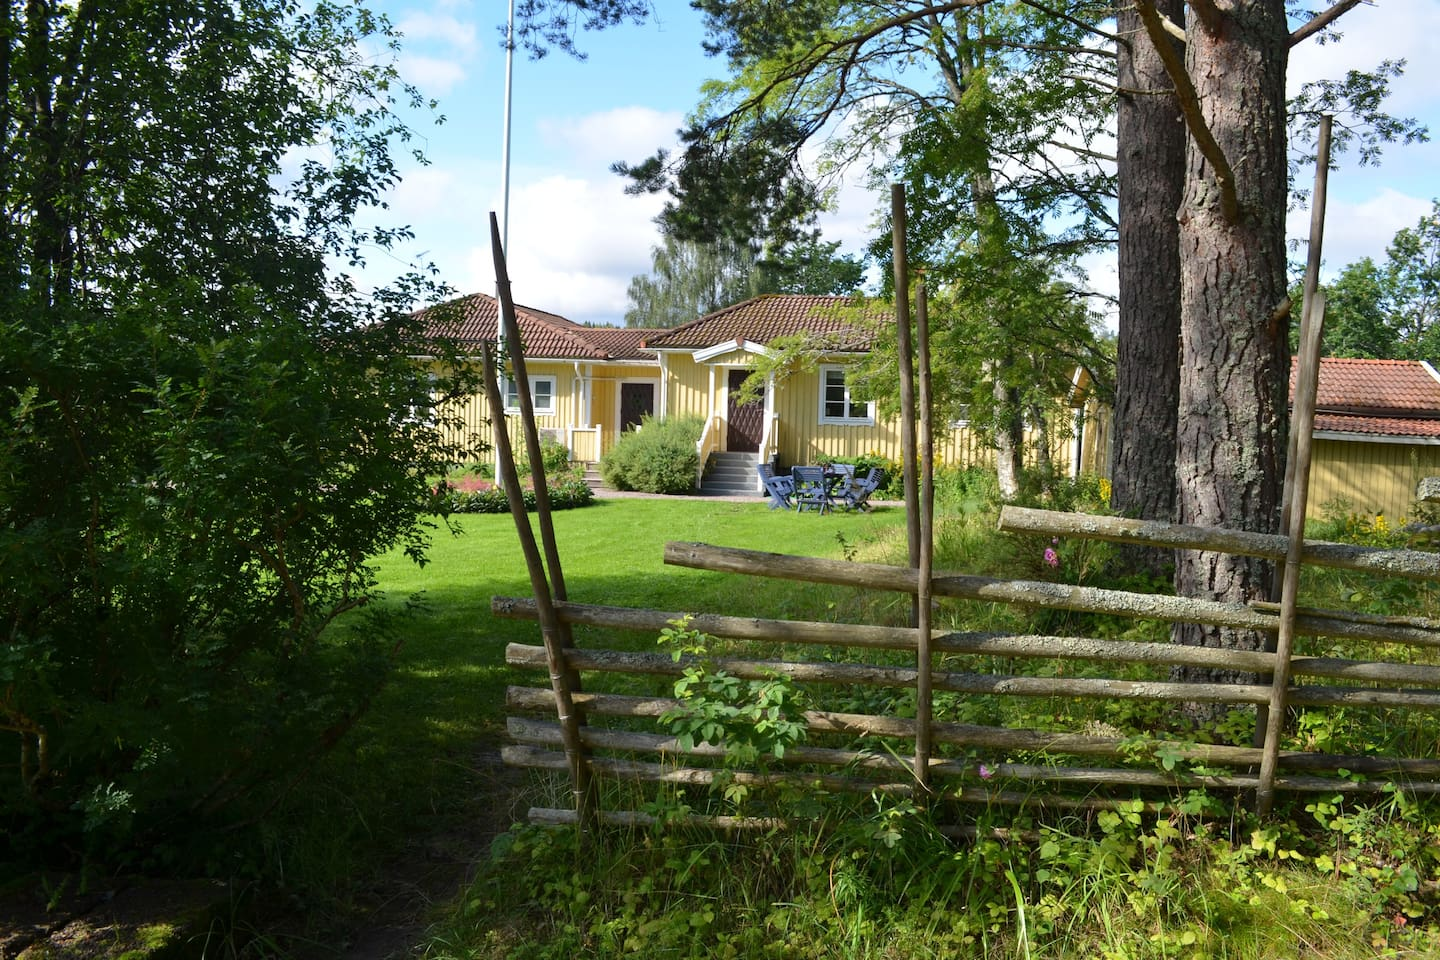 Welcome to guest house Bjökängen.  The house is a secluded part of estate Villa Furuvik where your hosts live. You will have your own house and your own garden.